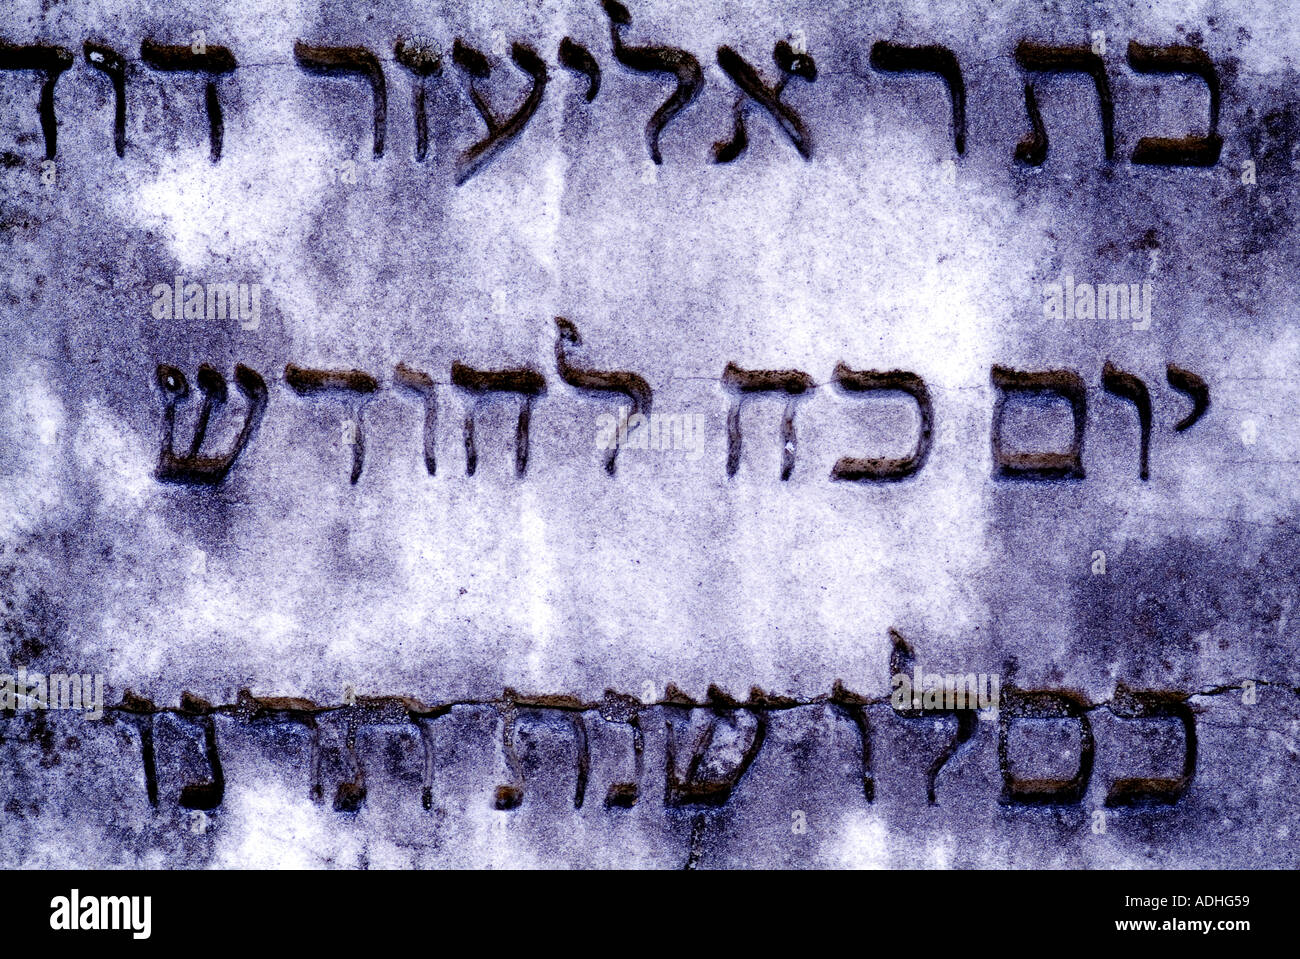 Close-up of Hebrew script engraved on a wall - Stock Image